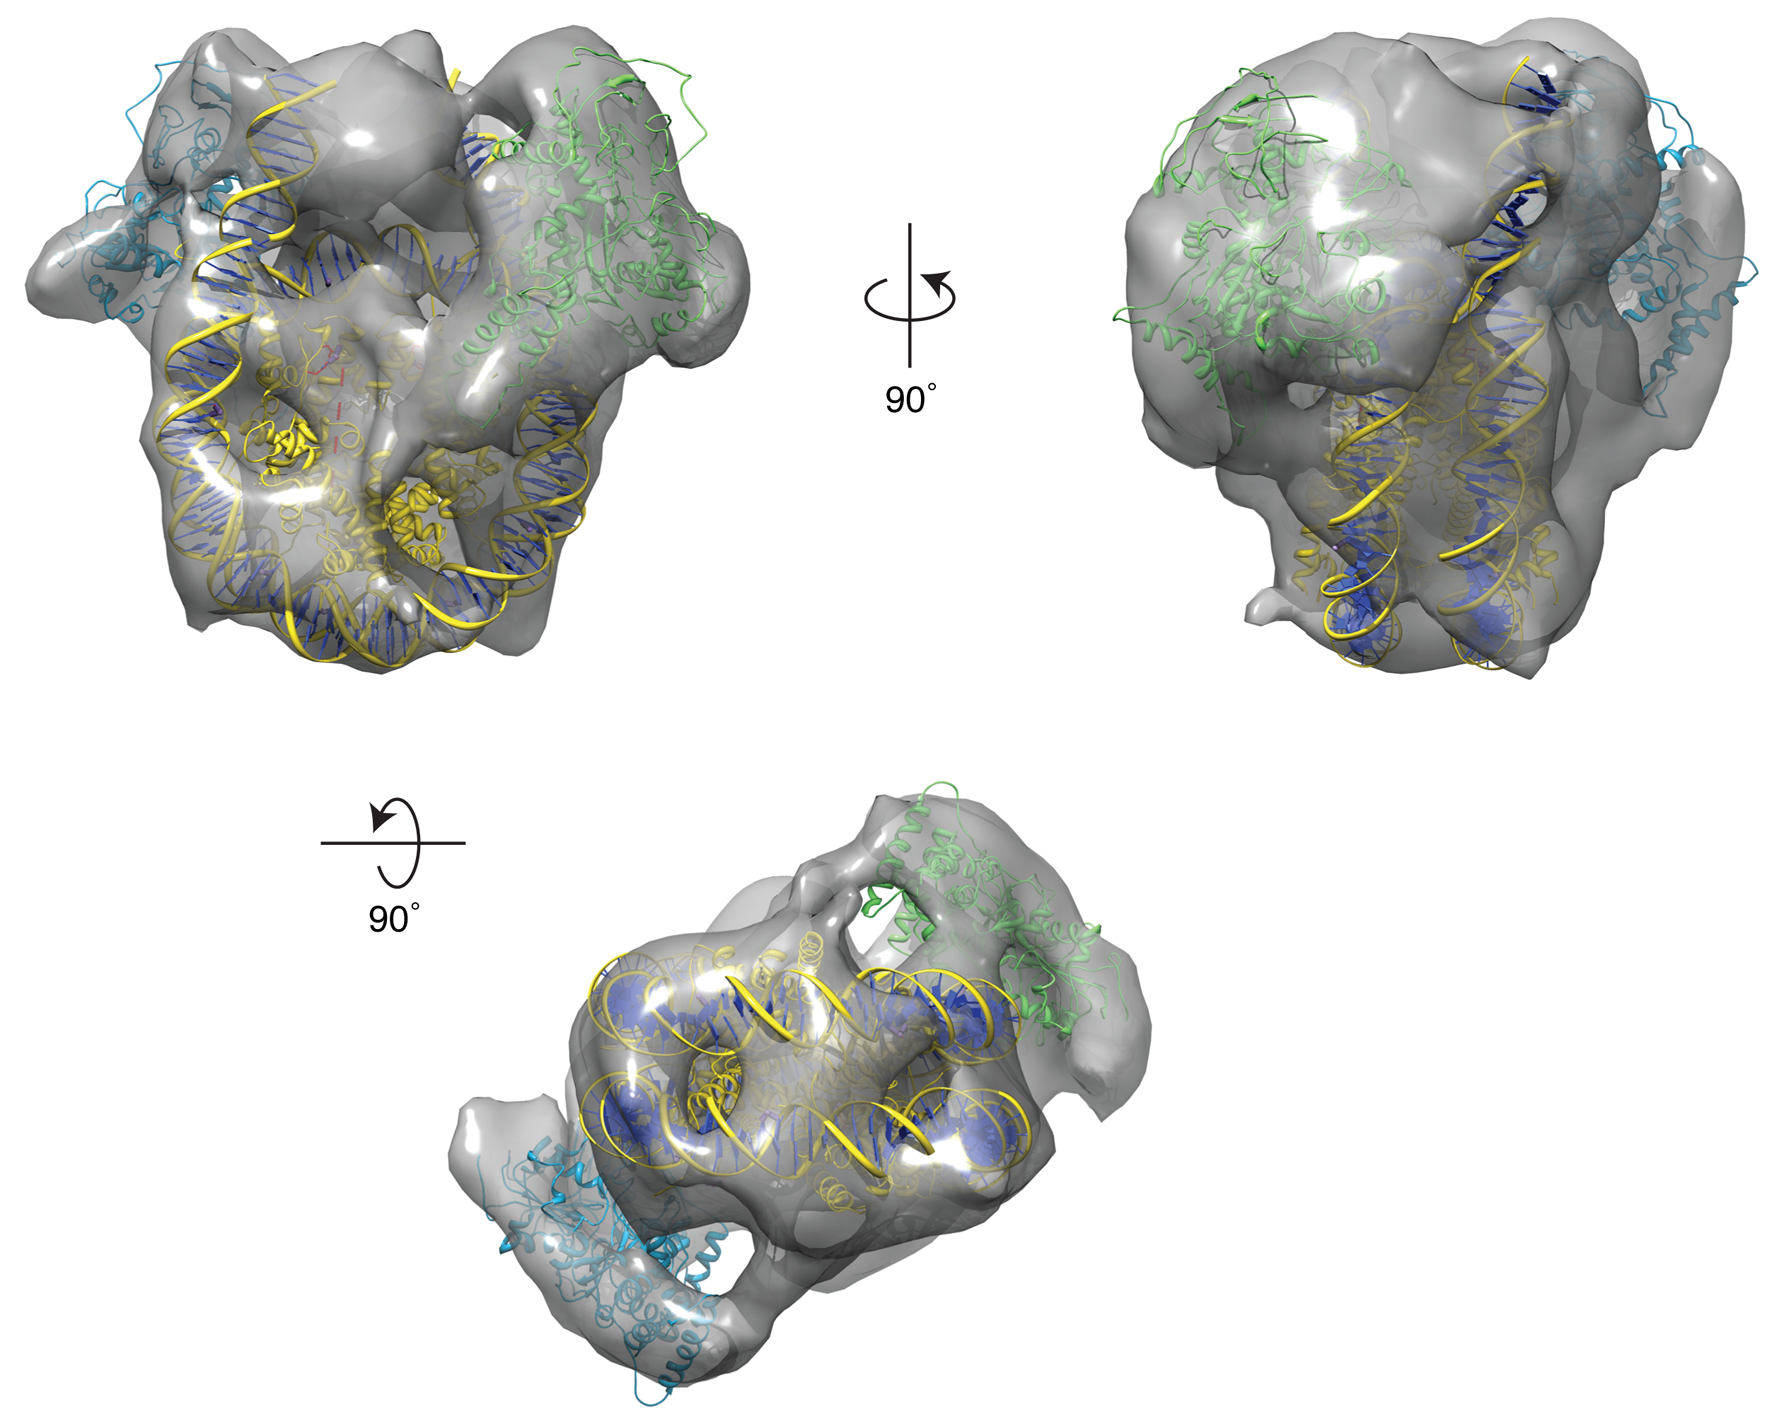 Functional role for an Arp8 dimer within the INO80 Chromatin-Remodelling Complex - Matheshwaran Saravanan*, Jochen Wuerges*, Daniel Bose*, Elizabeth A. McCormack, Nicola J. Cook, Xiaodong Zhang and Dale B. Wigley. PNAS, 109 (51), 20883-8 (2012), PMID 23213201.In collaboration with Prof. Dale Wigley FRS, we carried out structural and functional characterisations of the INO80 chromatin re-modelling complex, including the actin-relate protein Arp 8 bound to a nucleosome, an early structure of nucleosome-bound proteins solved using cryo-EM.